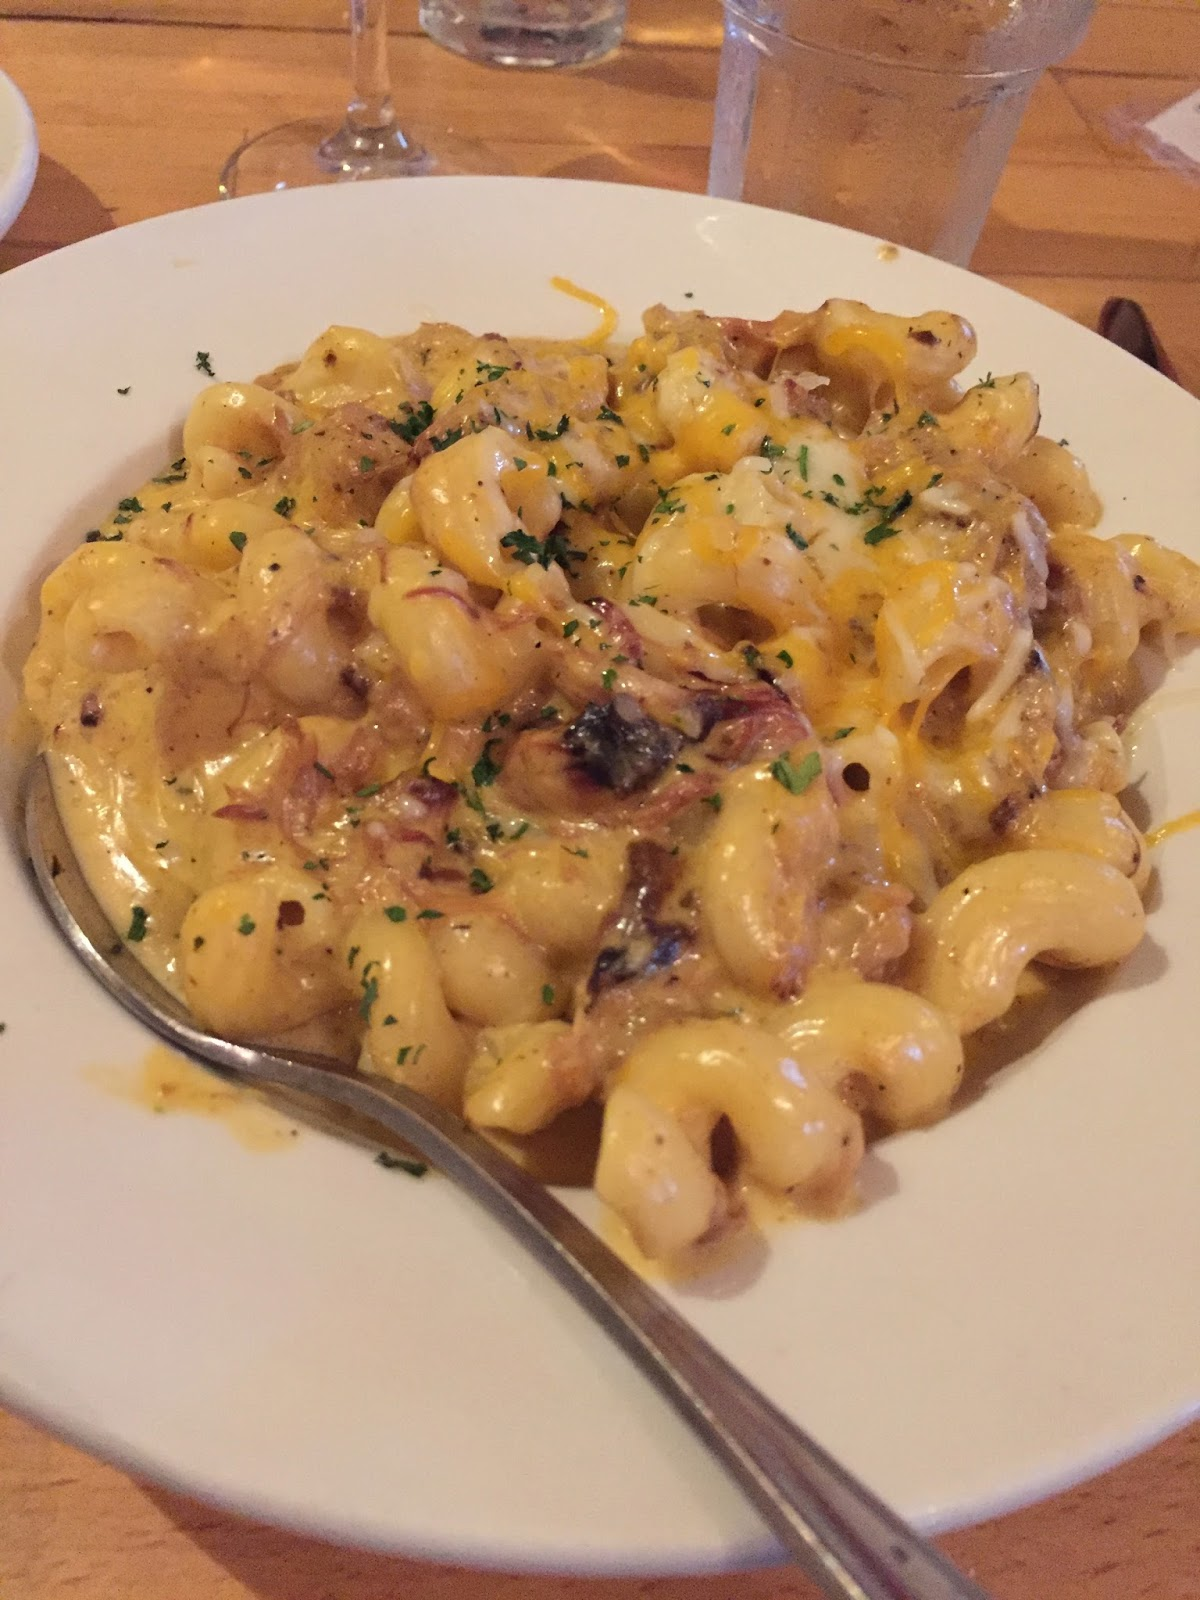 Indianapolis Restaurant Scene: Fire by the Monon - Revisit